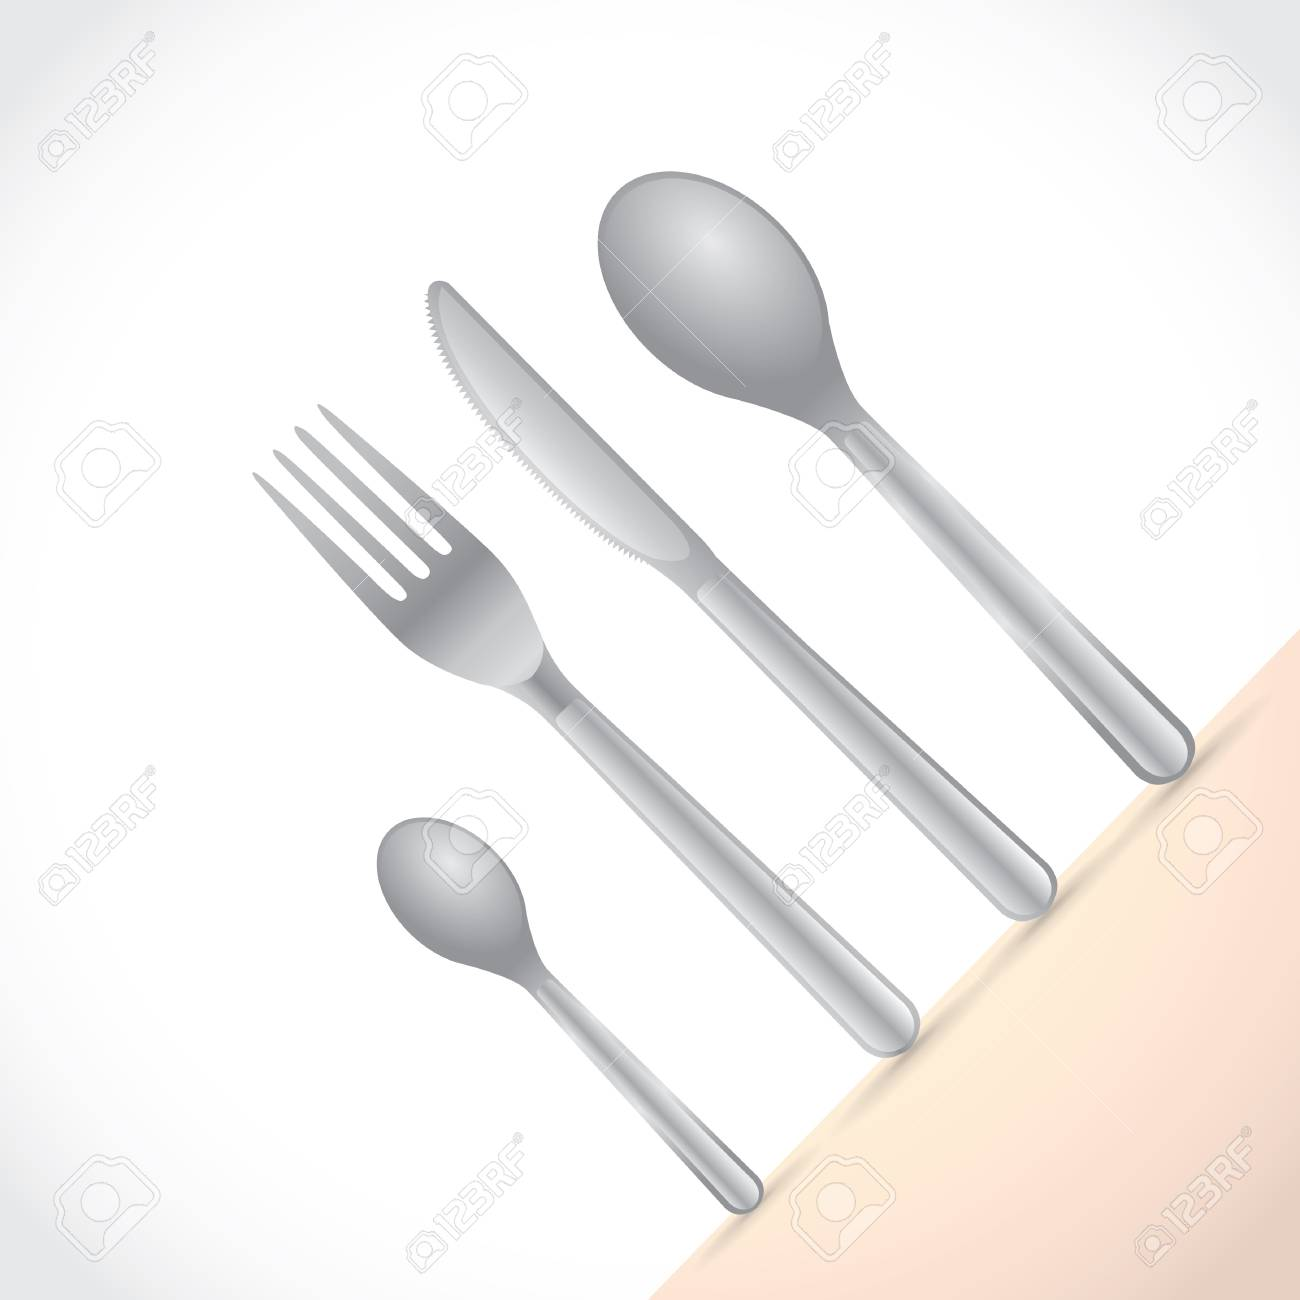 Cutlery, dishes, coffee spoon, spoon, knife and fork Stock Vector - 17181557